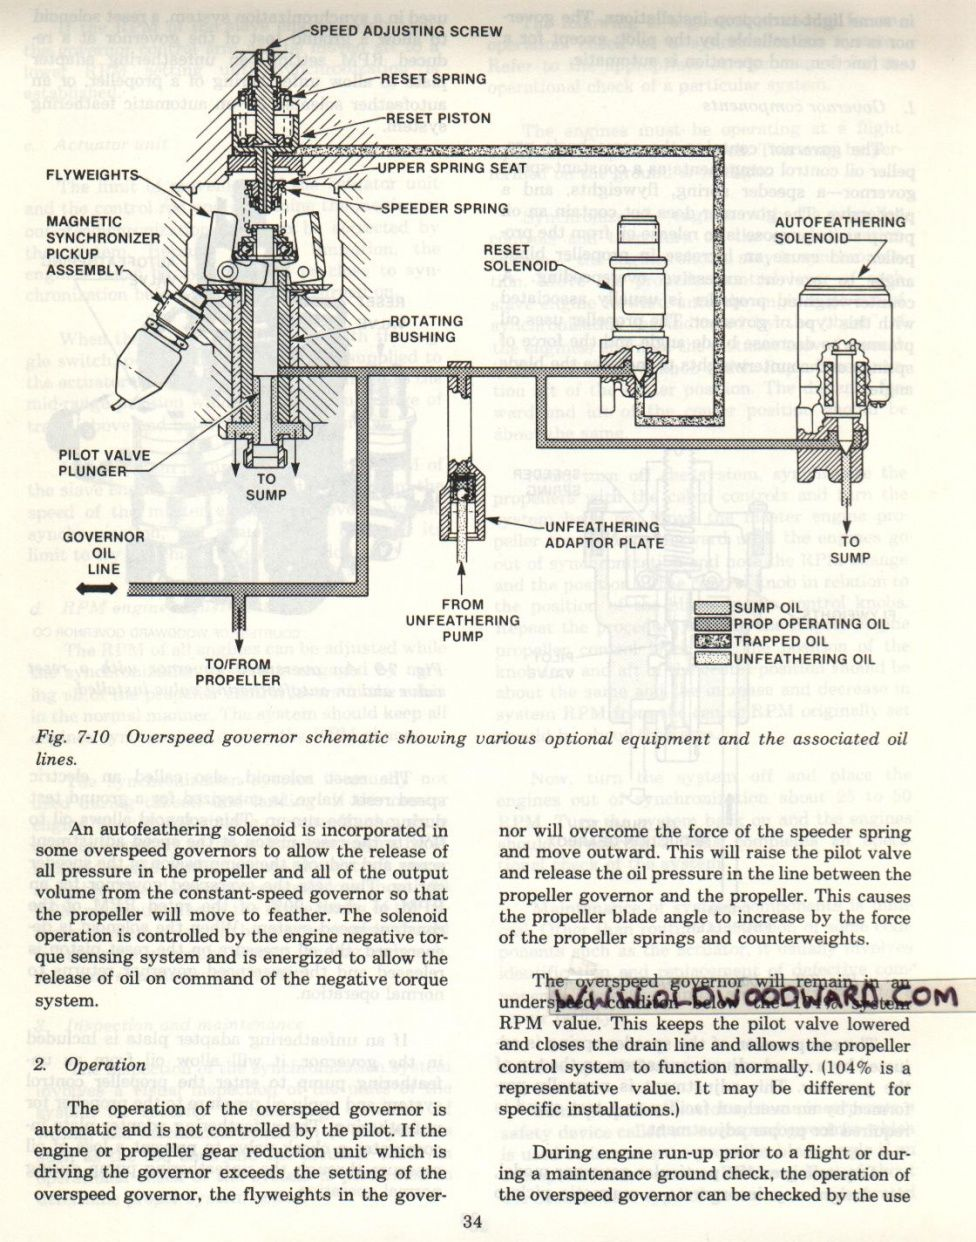 woodward manual page 34 propeller governor controls  [ 976 x 1242 Pixel ]